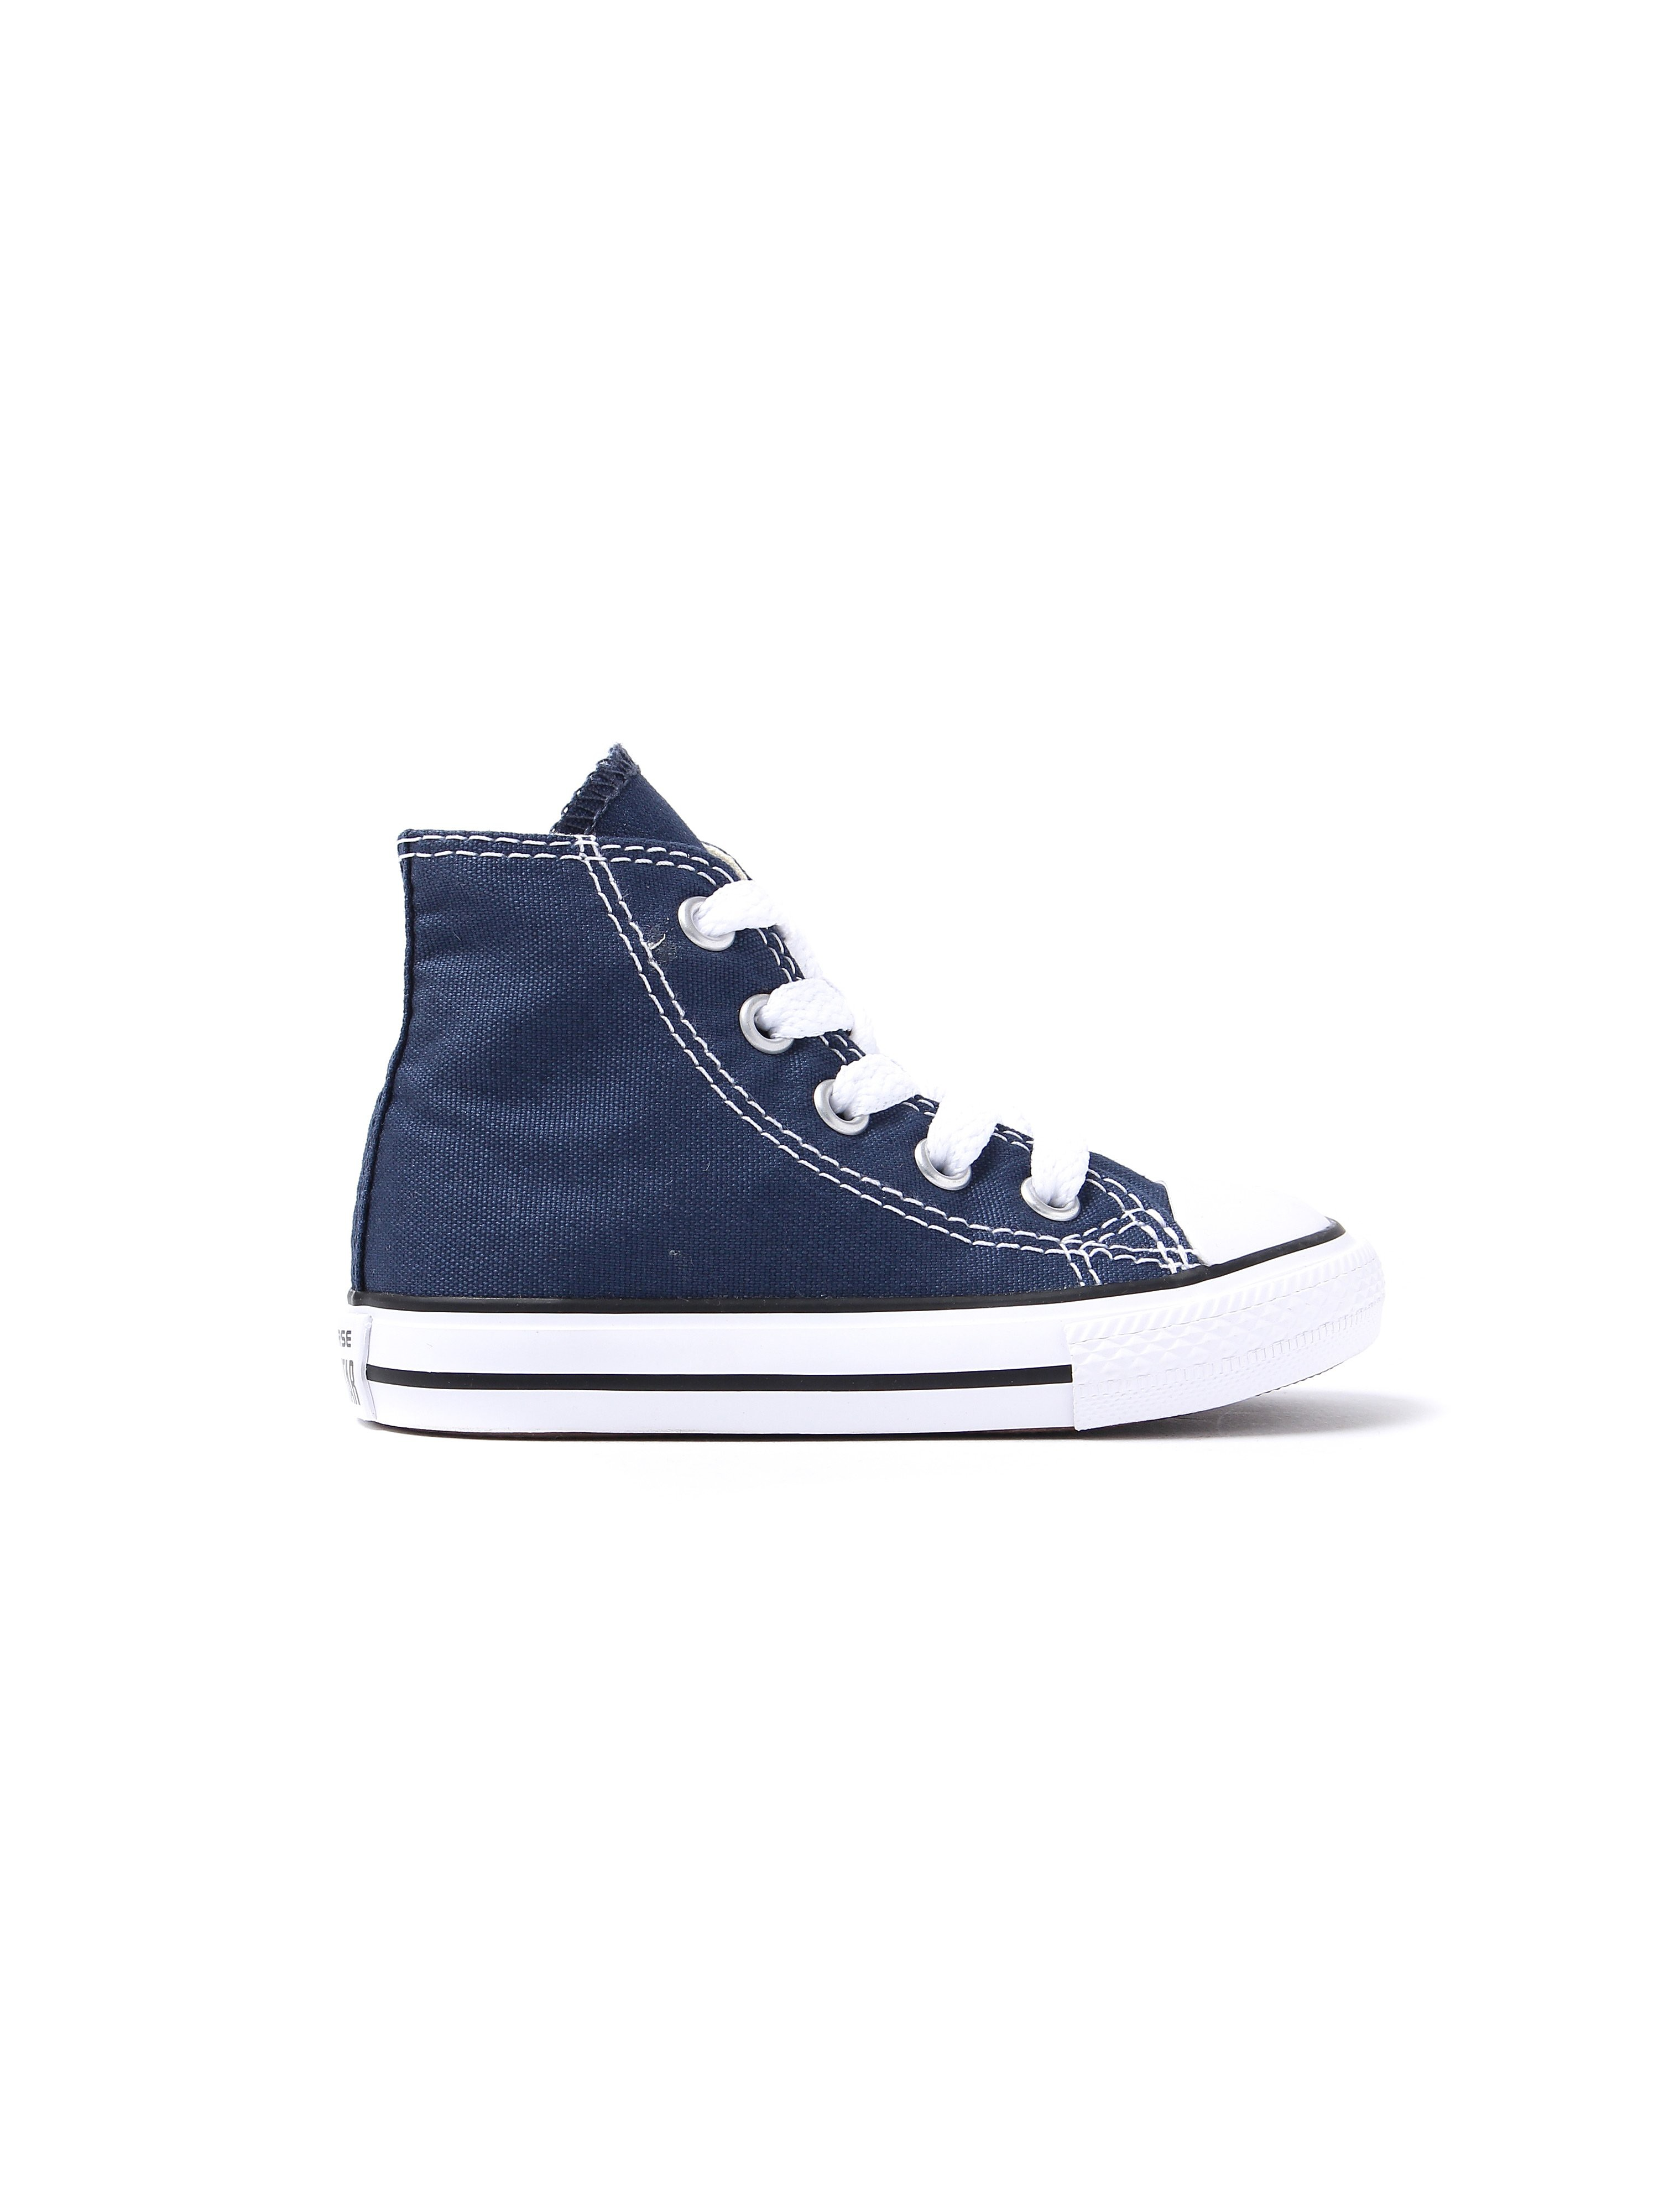 Converse Infant Crib First Star High Top - Navy